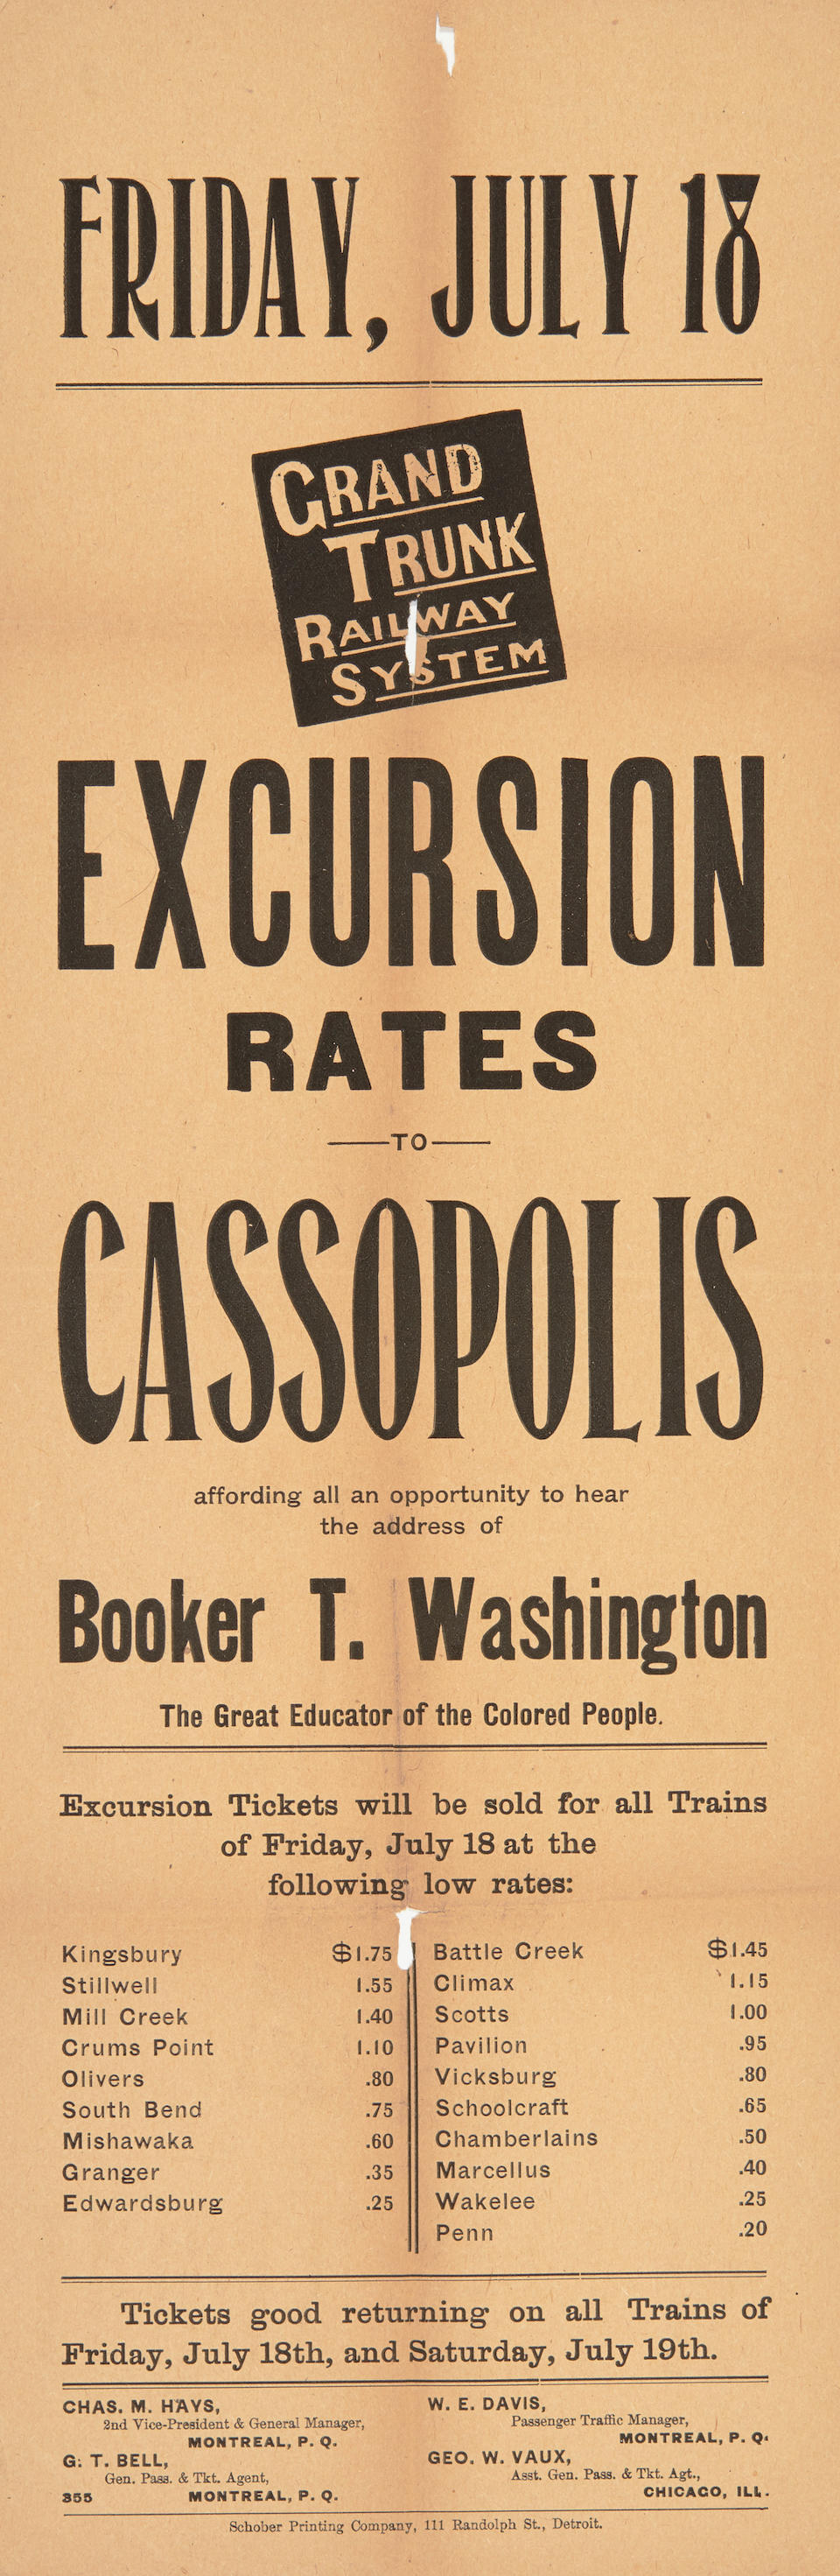 WASHINGTON, BOOKER T. 1856-1915. Up From Slavery: An Autobiography. New York: Doubleday, Page & Co., 1901.